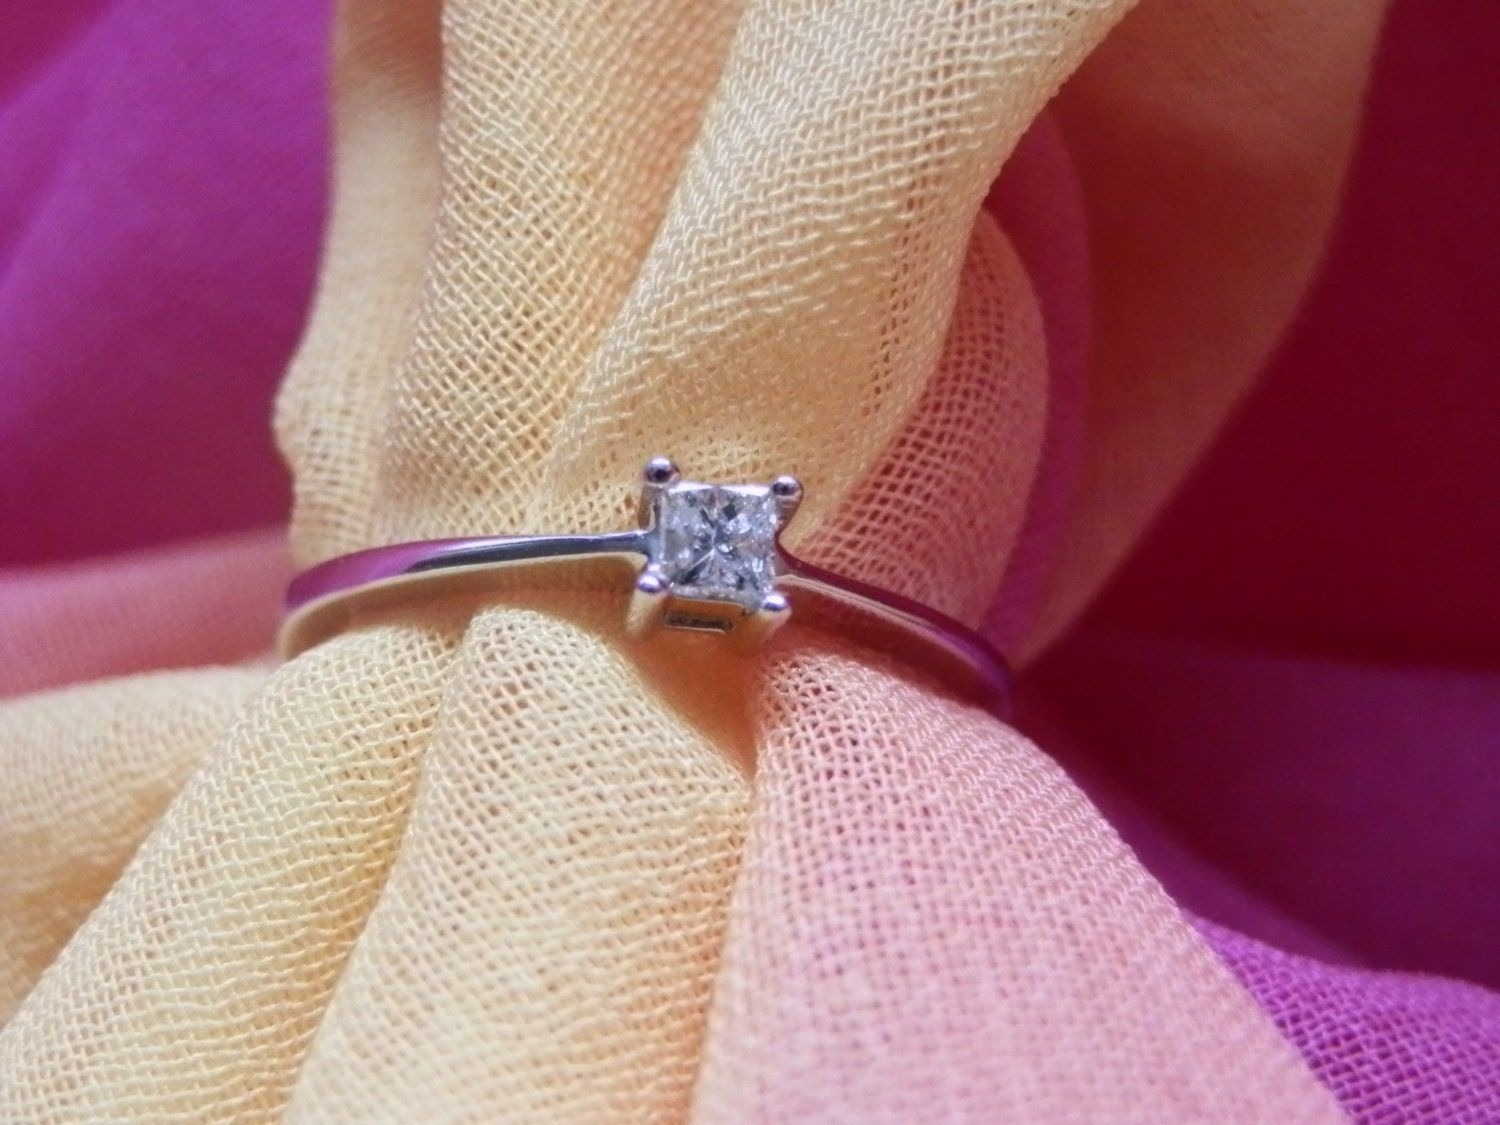 White Gold Princess Cut Diamond Engagement Ring  9kt 9ct Fully Hallmarked  Solitaire 0.10 ct Diamond  Vintage Slight yellow tint Diamond